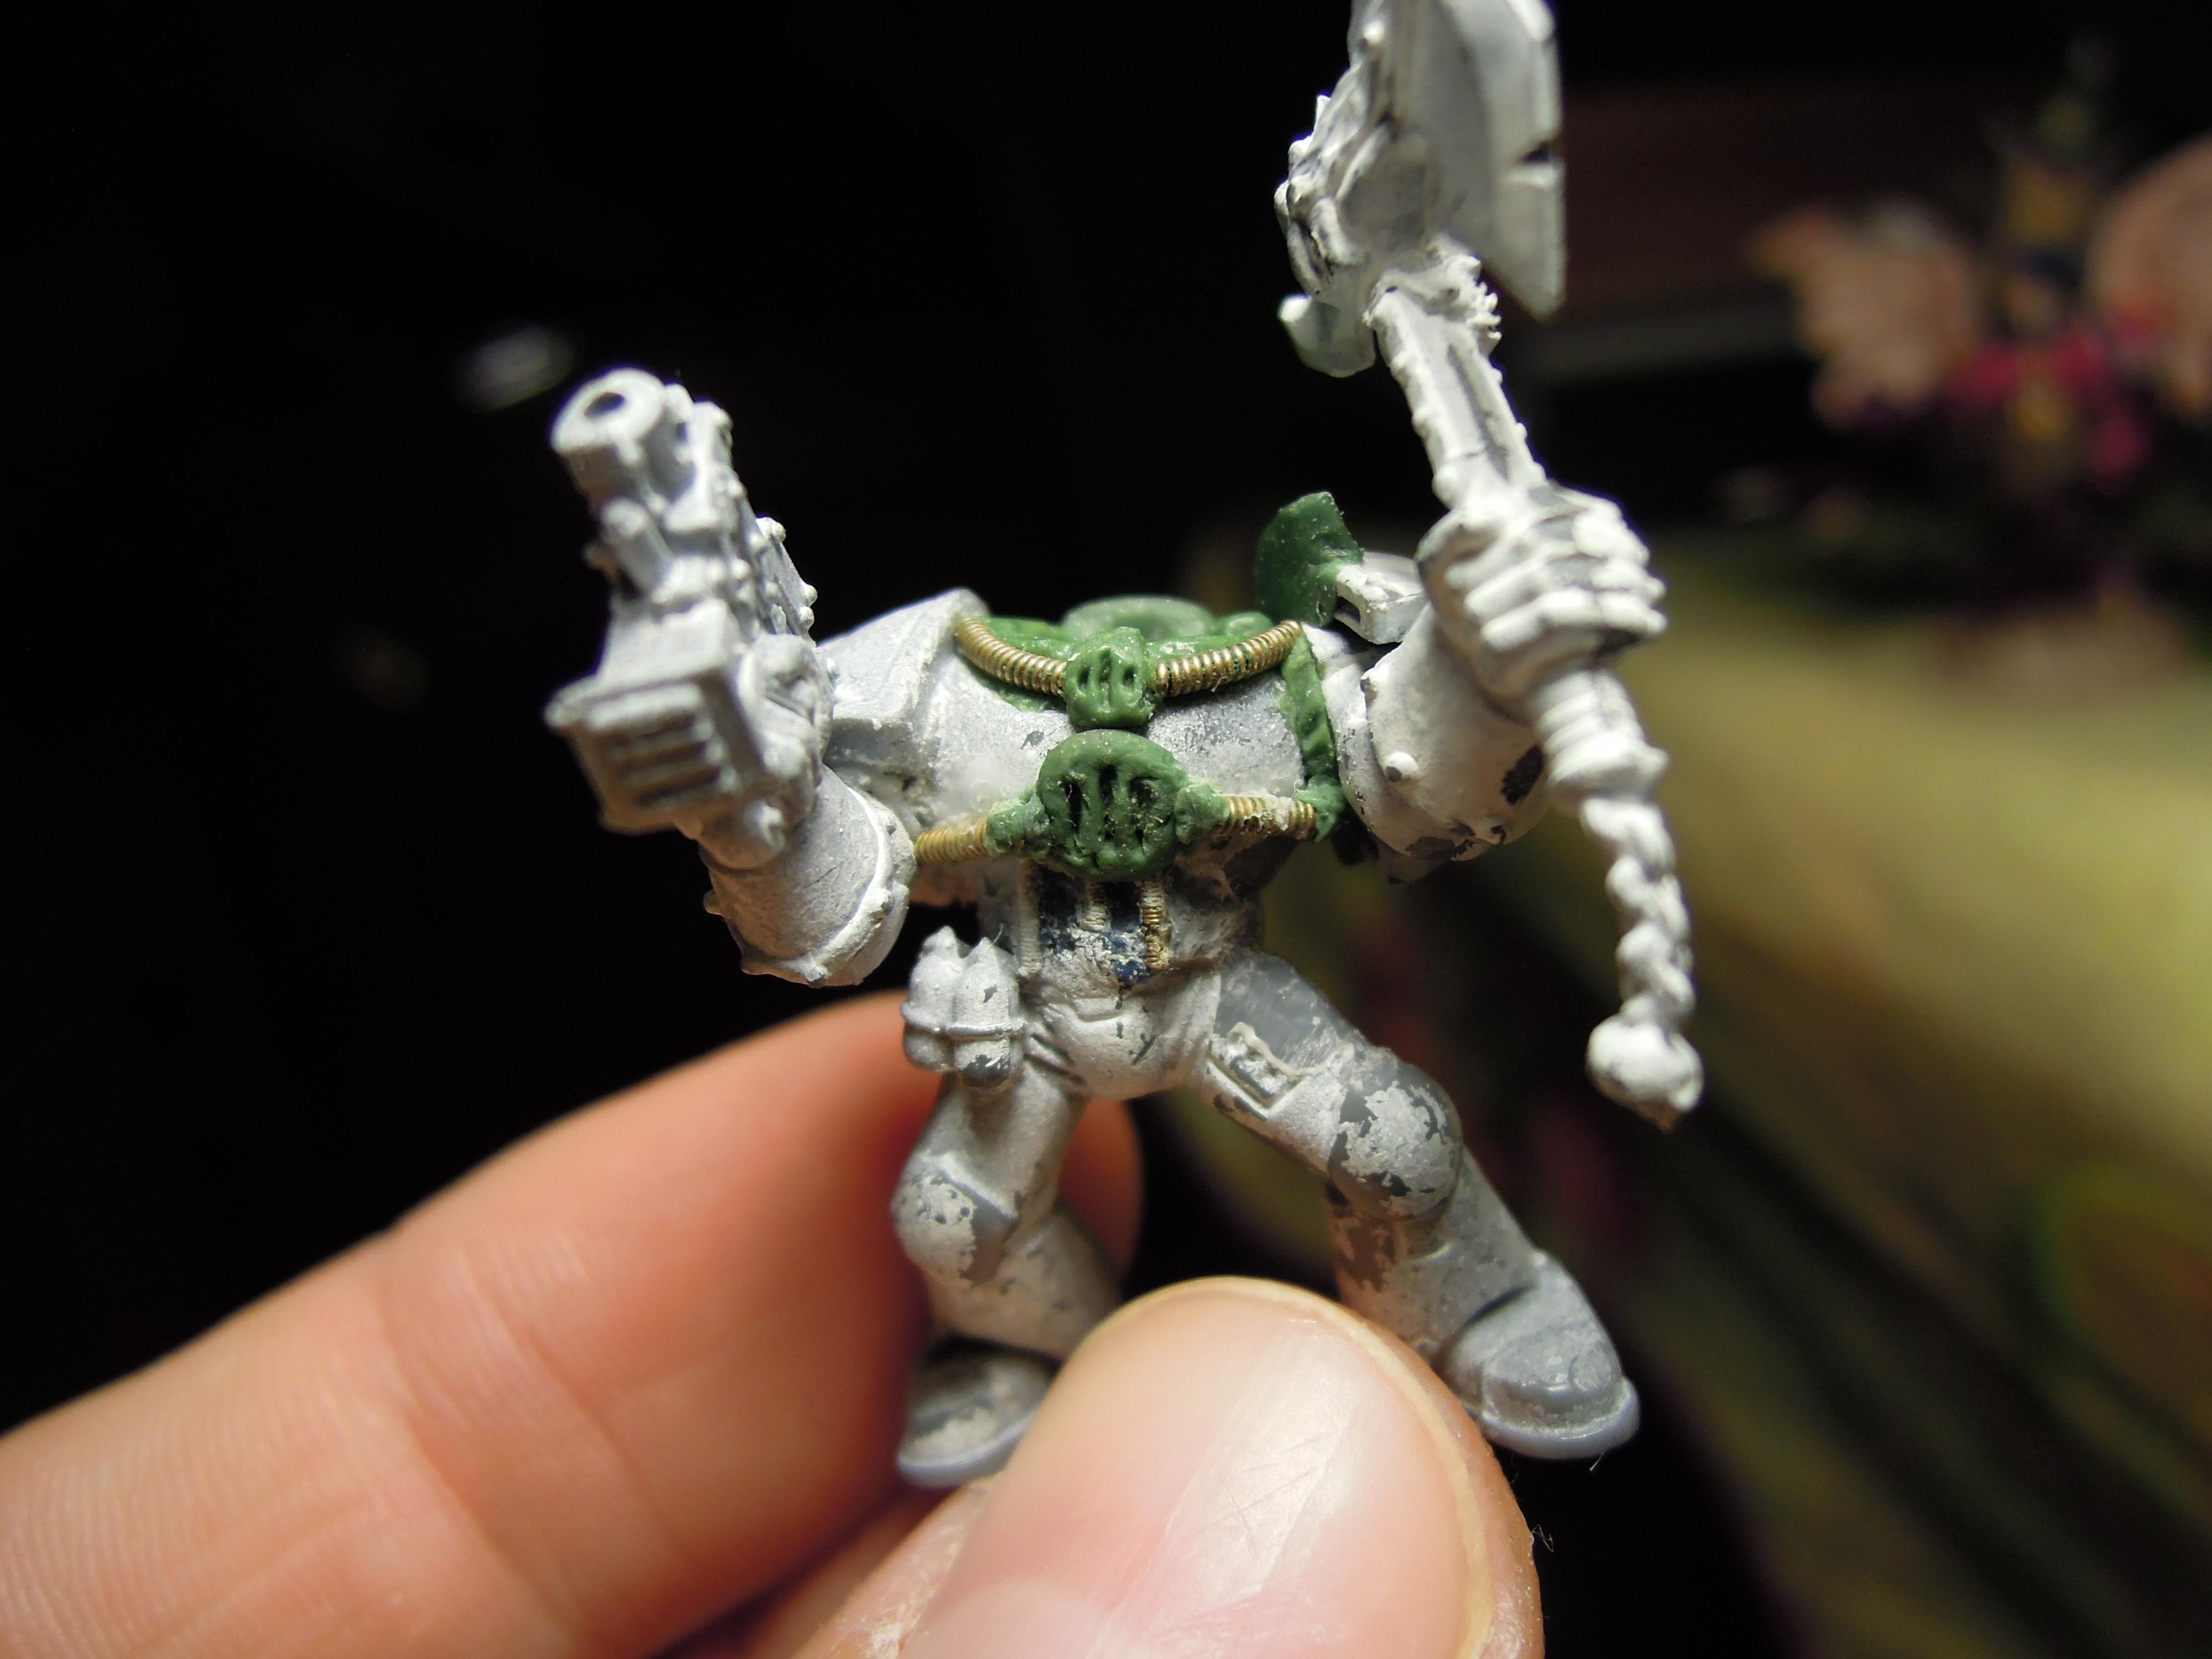 Aspiring Champion, Boltpistol, Chaos, Chaos Space Marines, Conversion, Greenstuff, Heretic Astartes, Iron Warriors, Iron Within, Iron Without!, Power Axe, Warhammer 40,000, Wire, Work In Progress